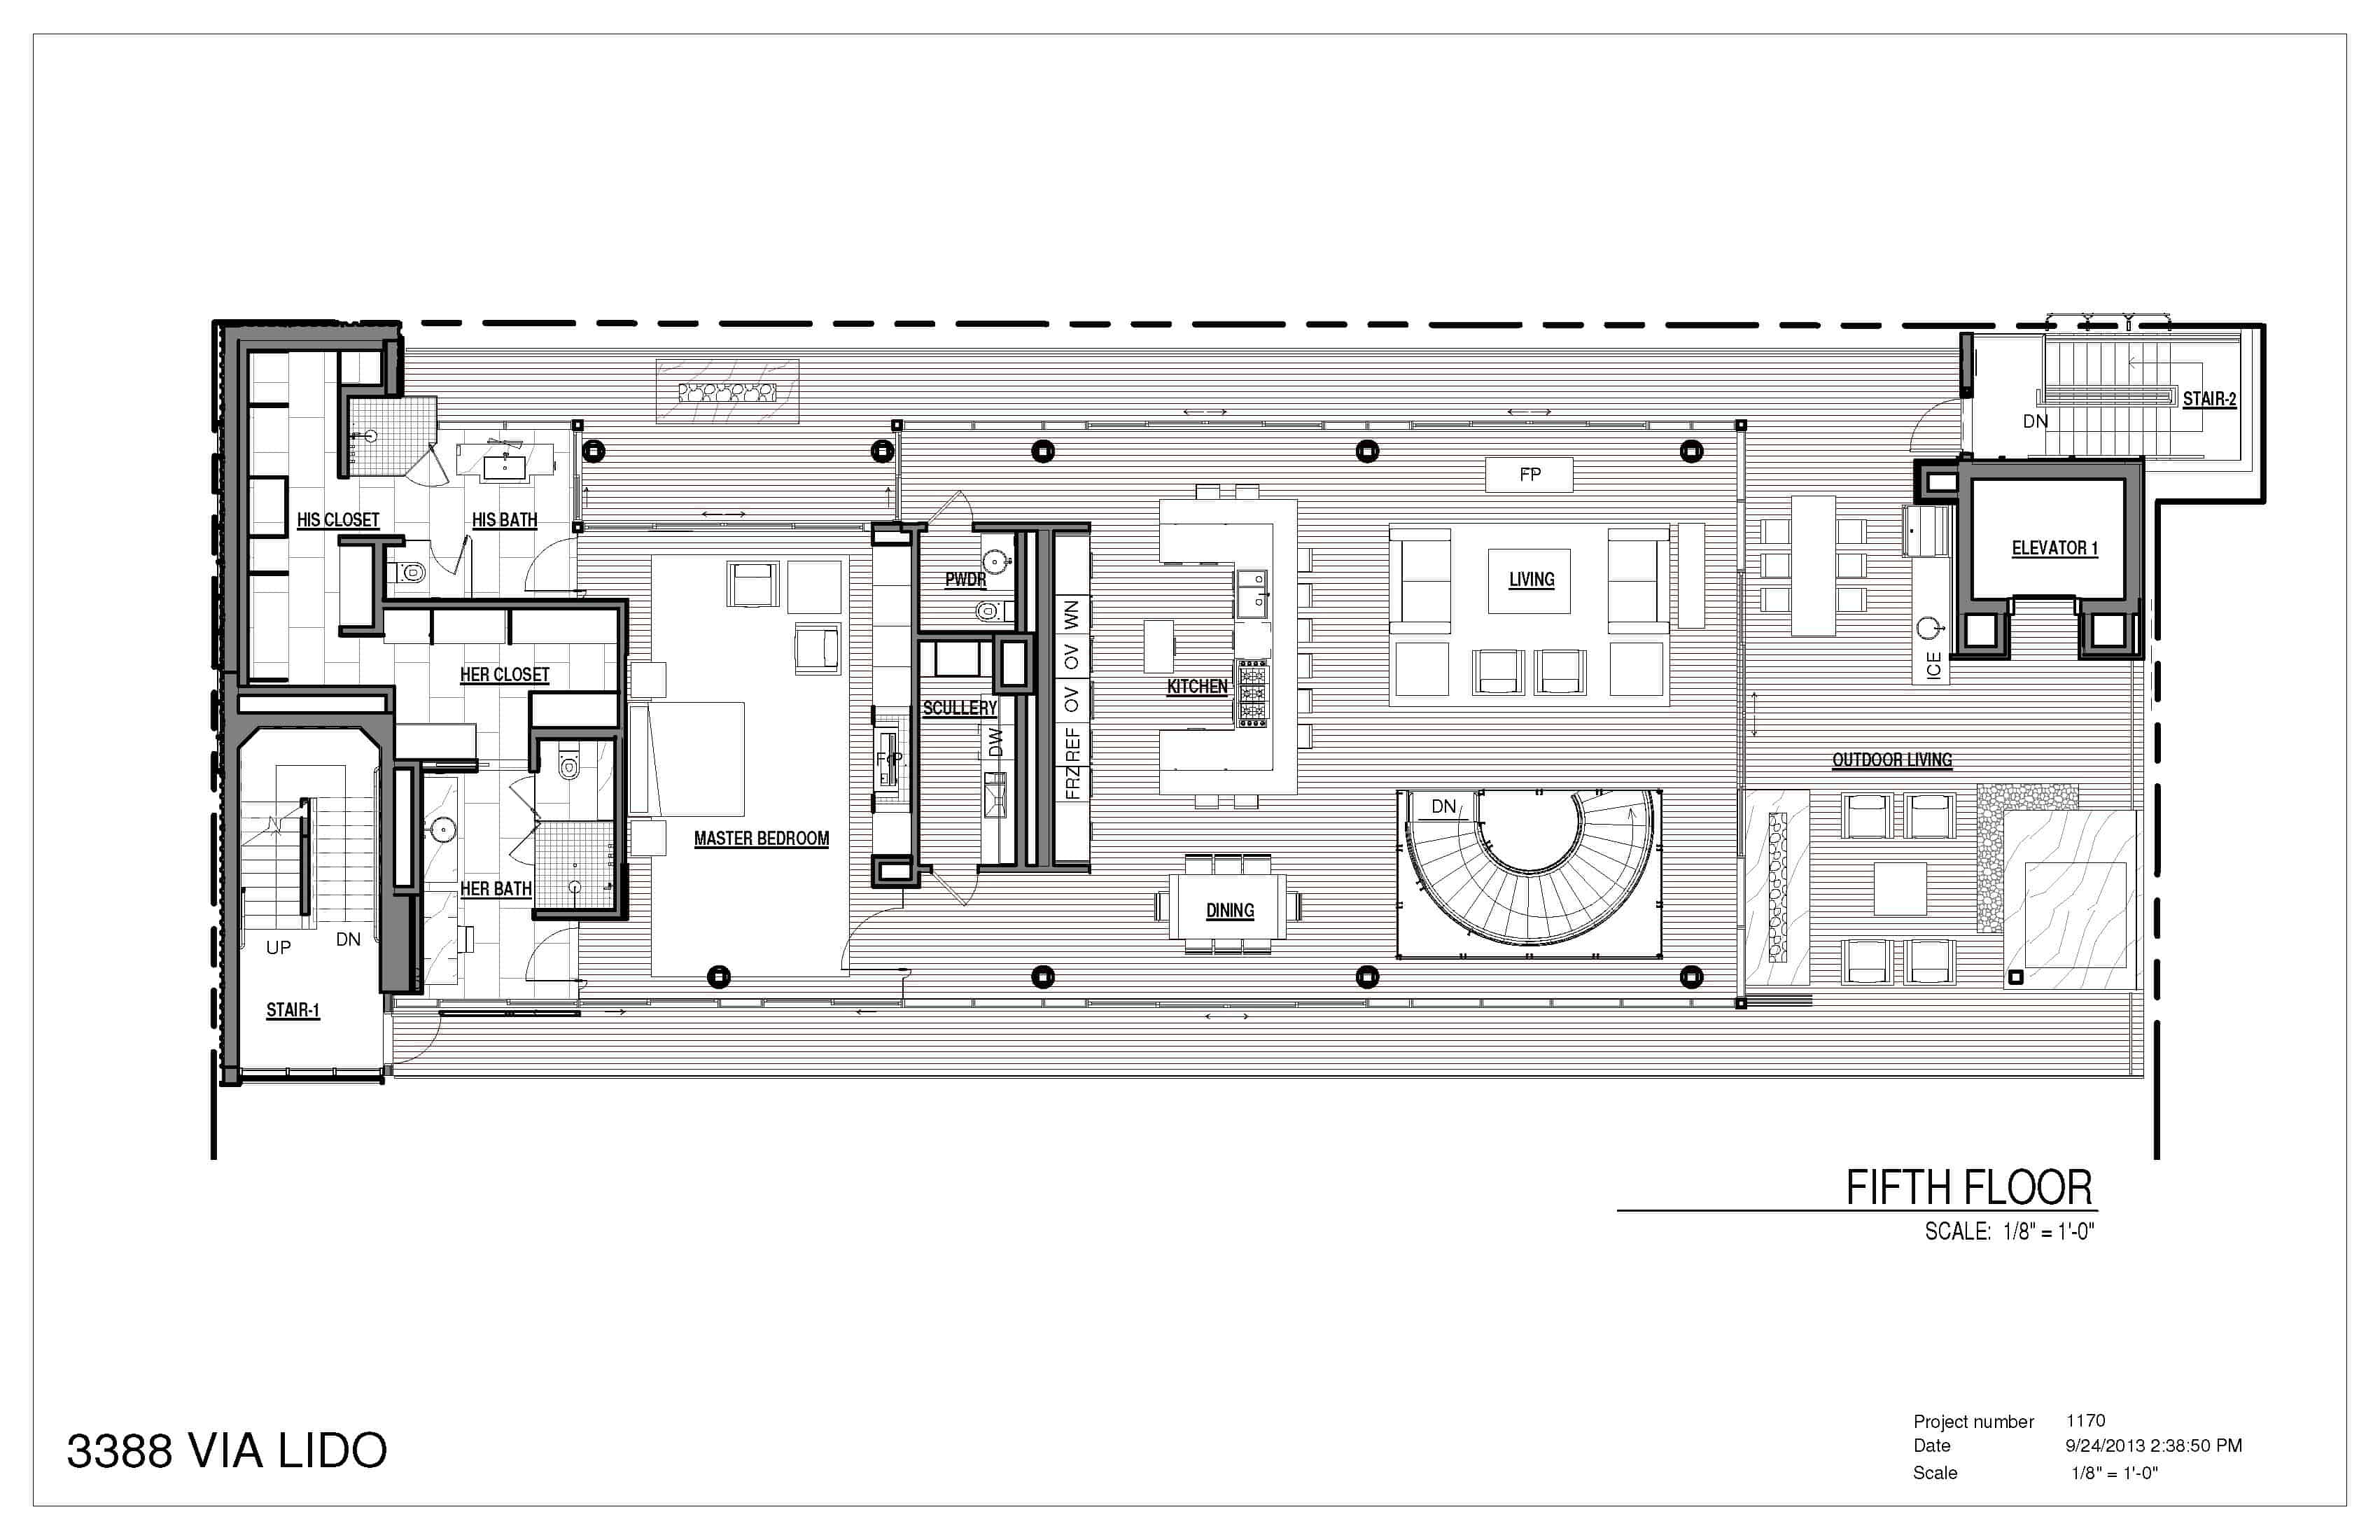 0934_3388 Via Lido_130924_3388 Via Lido_clean floor plans_Page_3